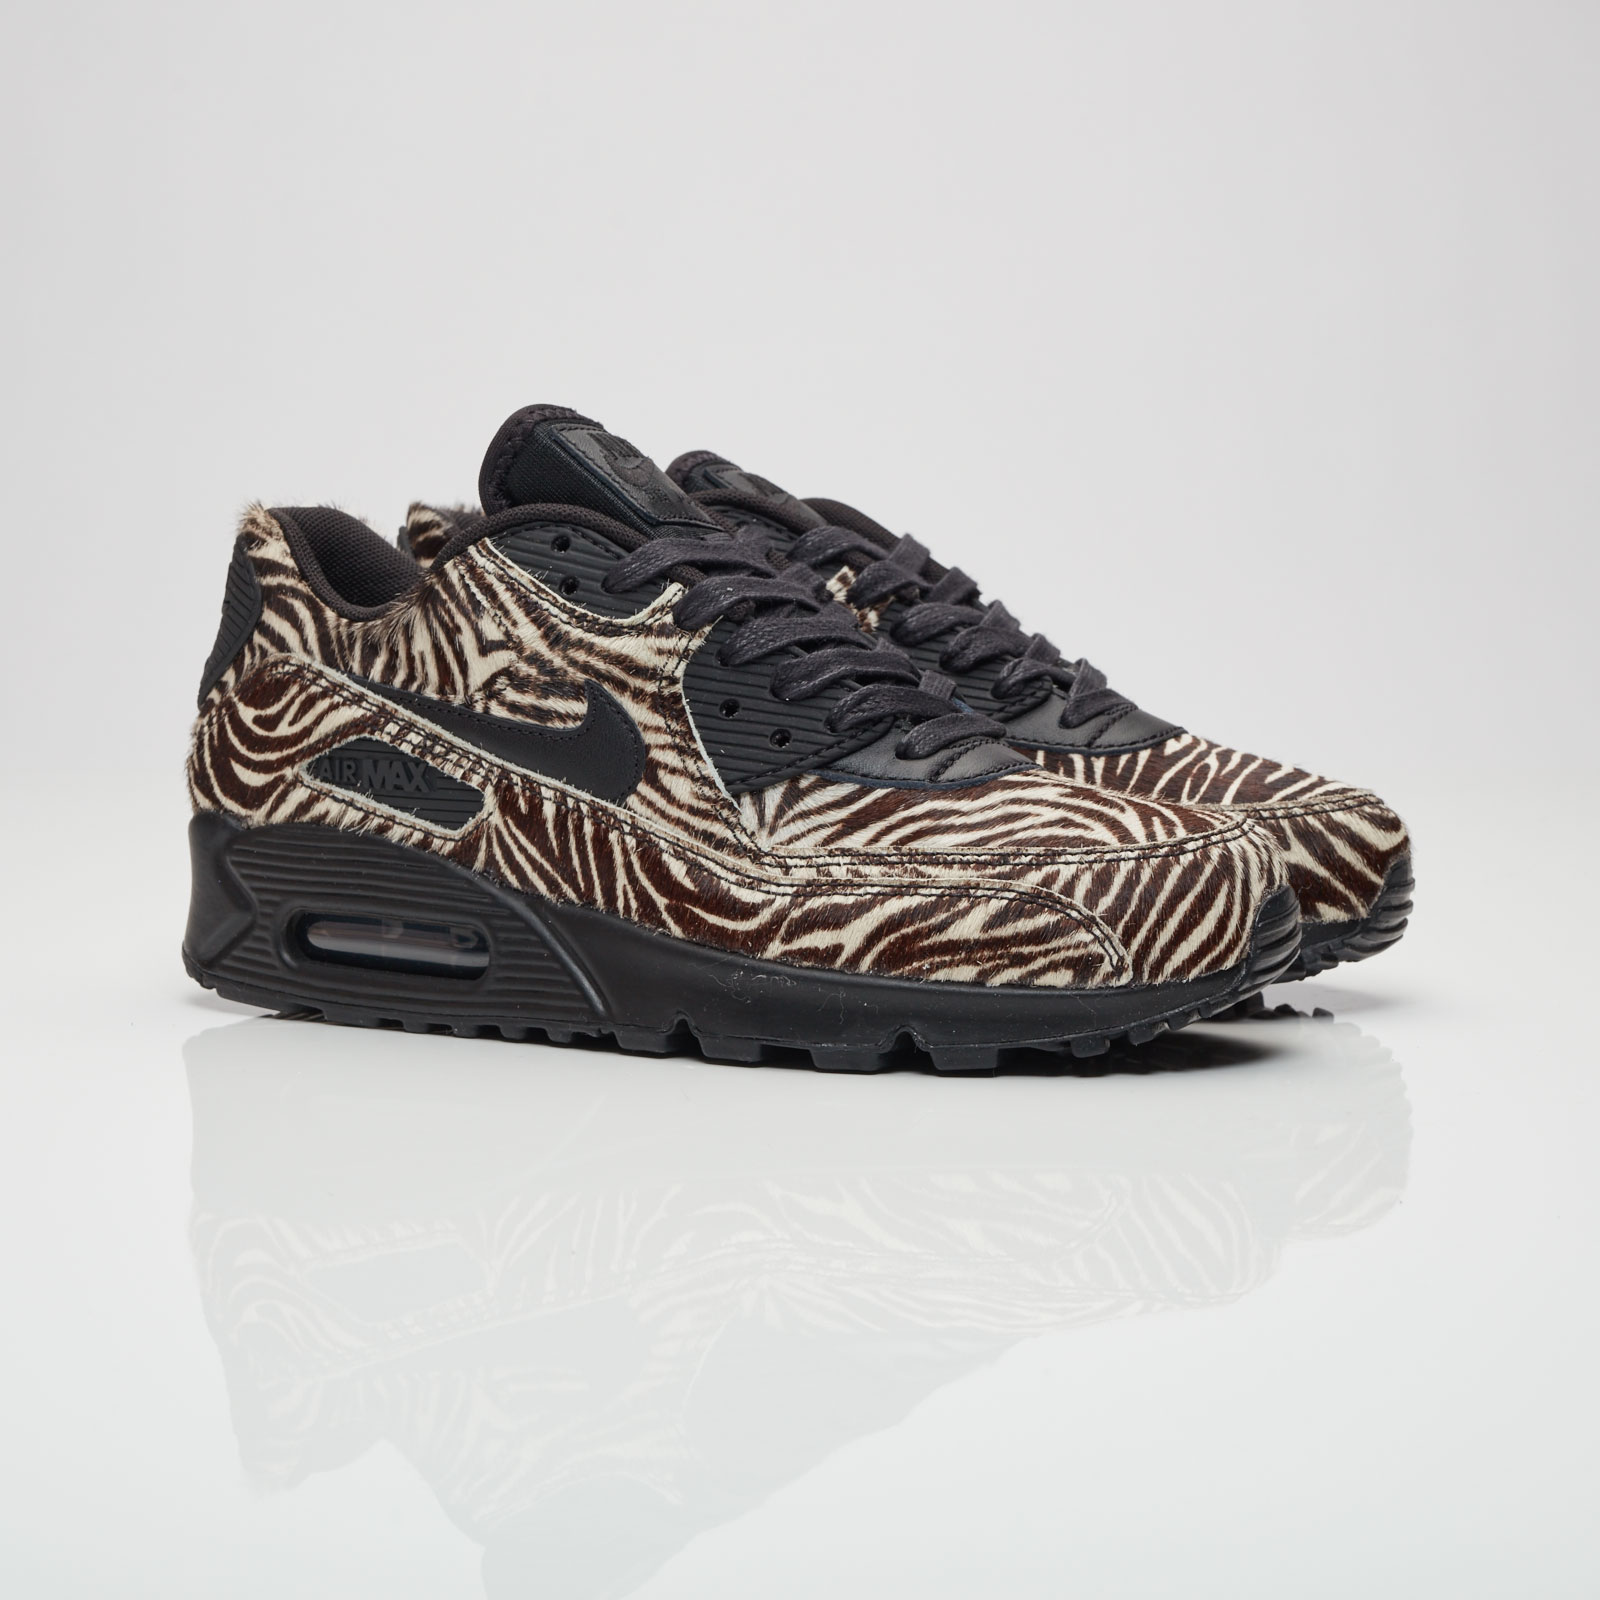 competitive price dd716 a885d Nike Wmns Air Max 90 Lx - 898512-001 - Sneakersnstuff ...